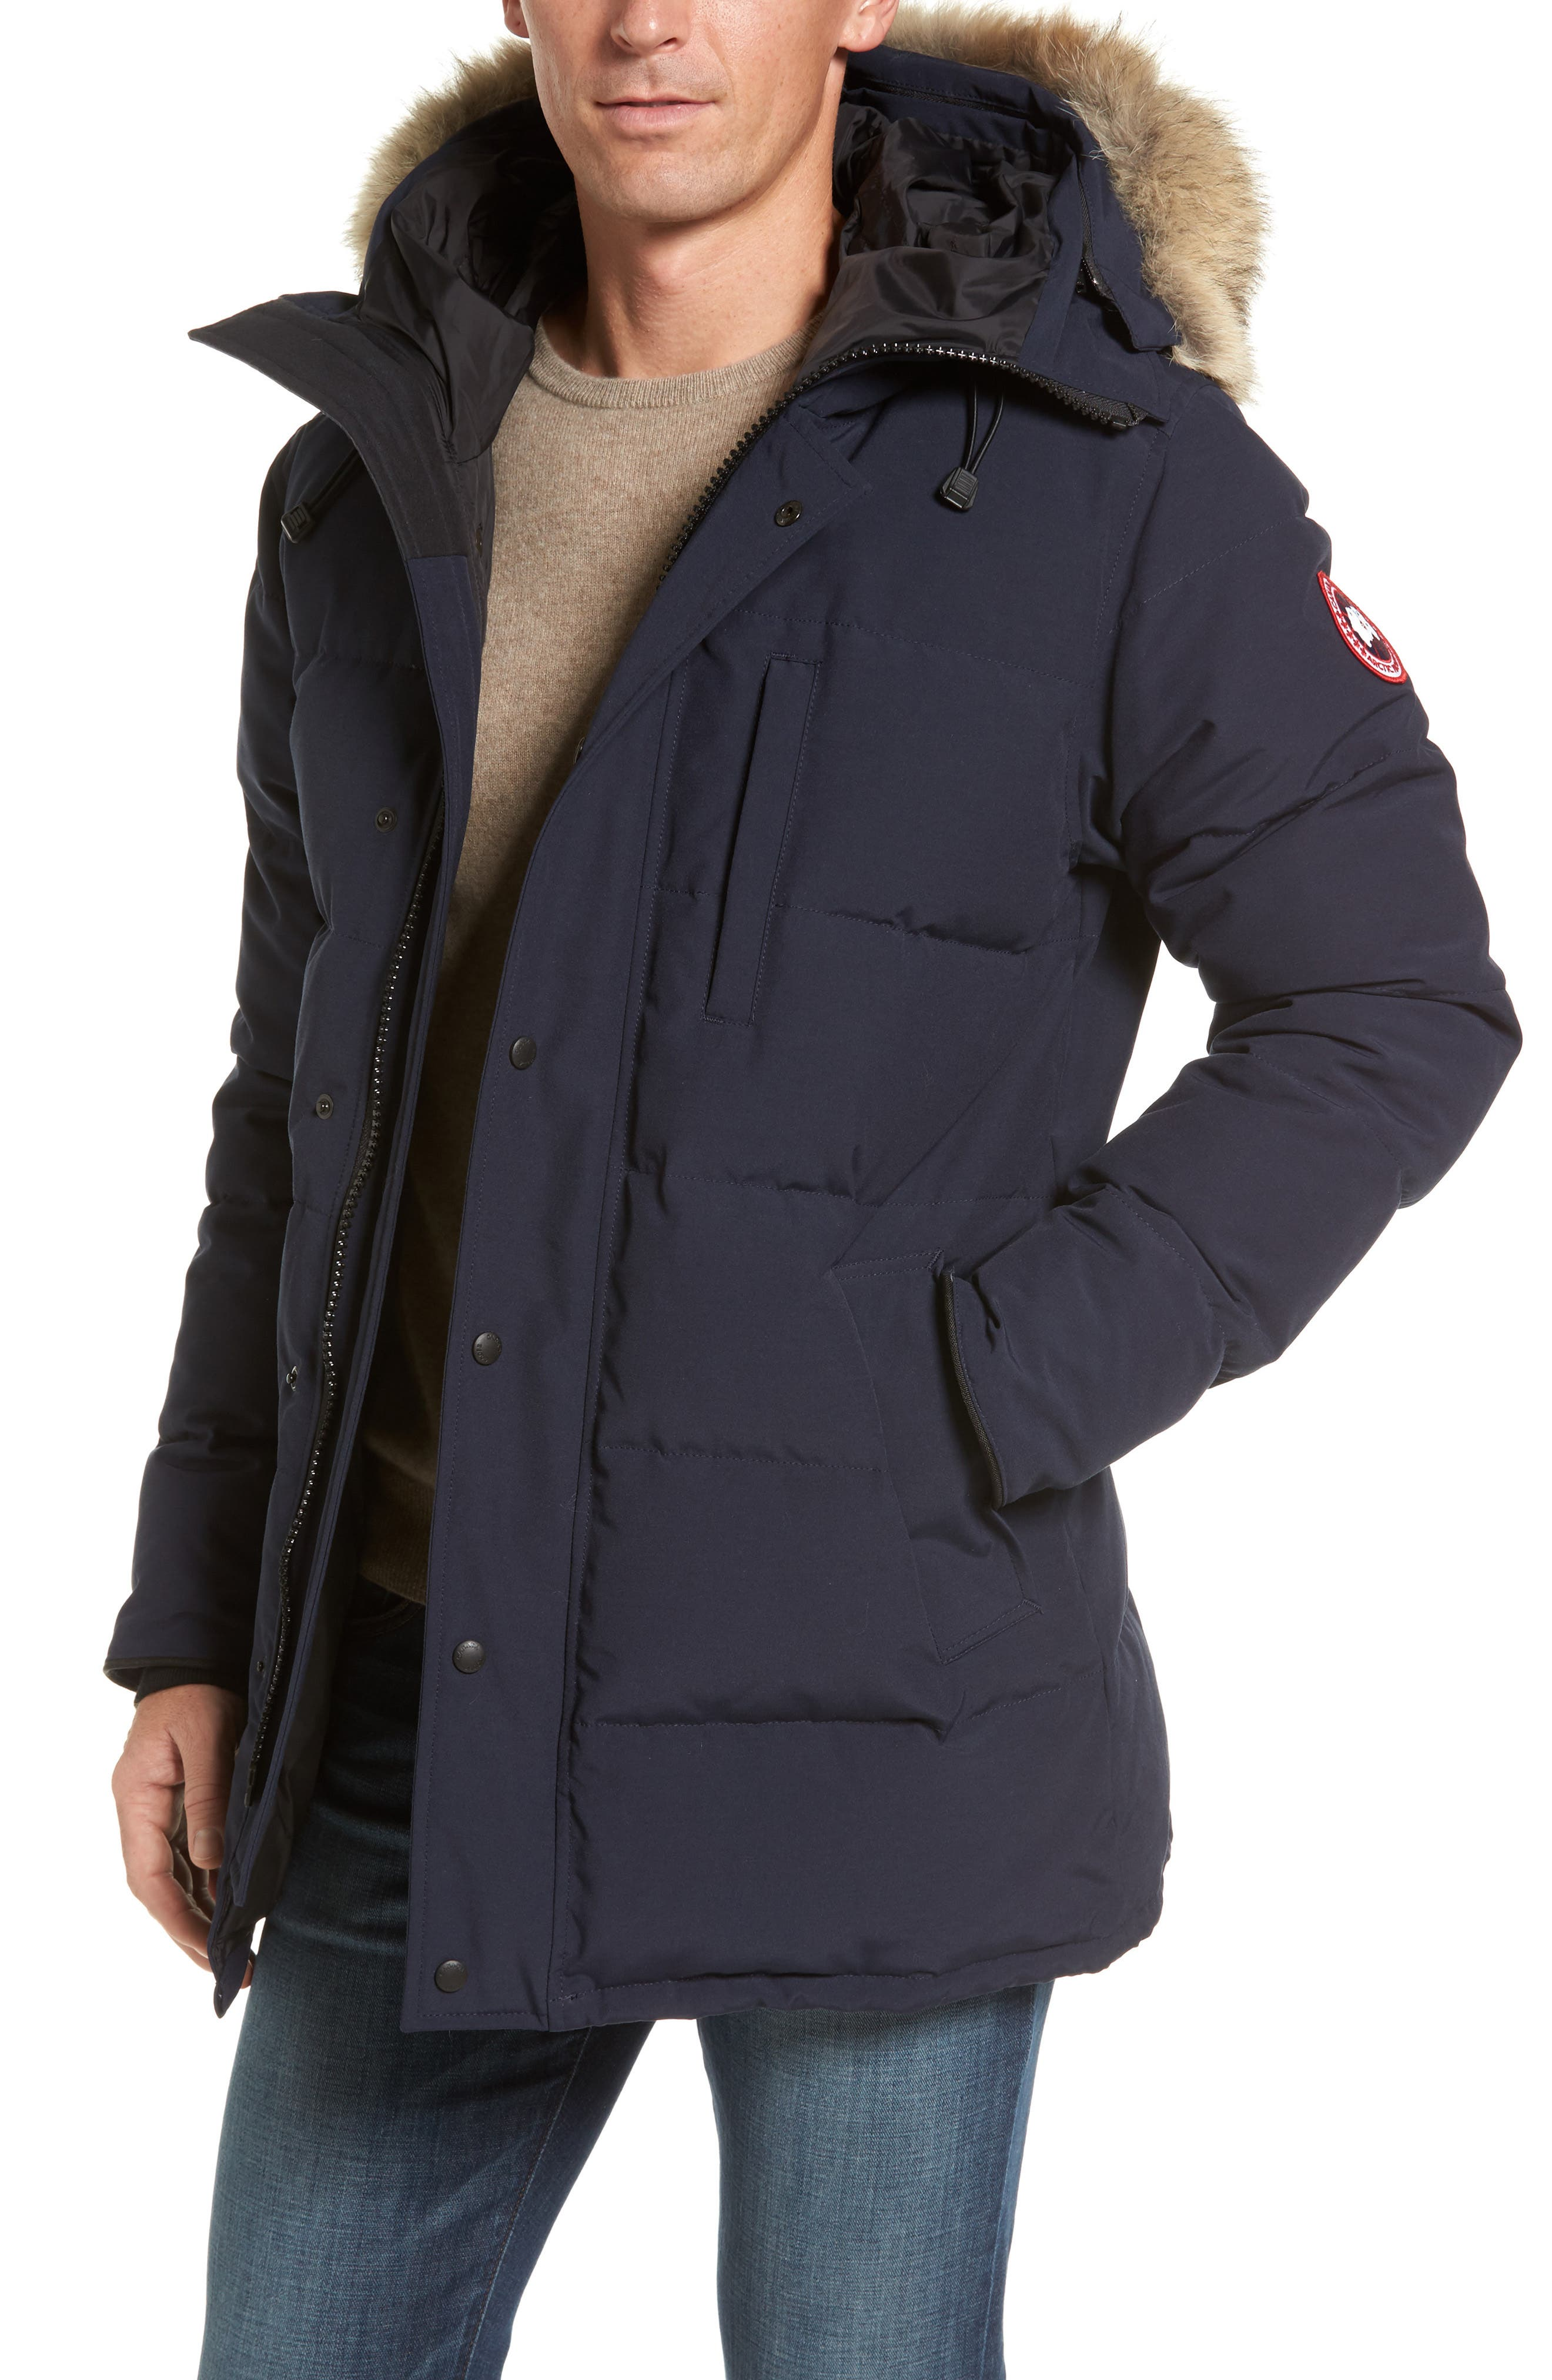 Main Image - Canada Goose 'Carson' Slim Fit Hooded Packable Parka with Genuine Coyote Fur Trim